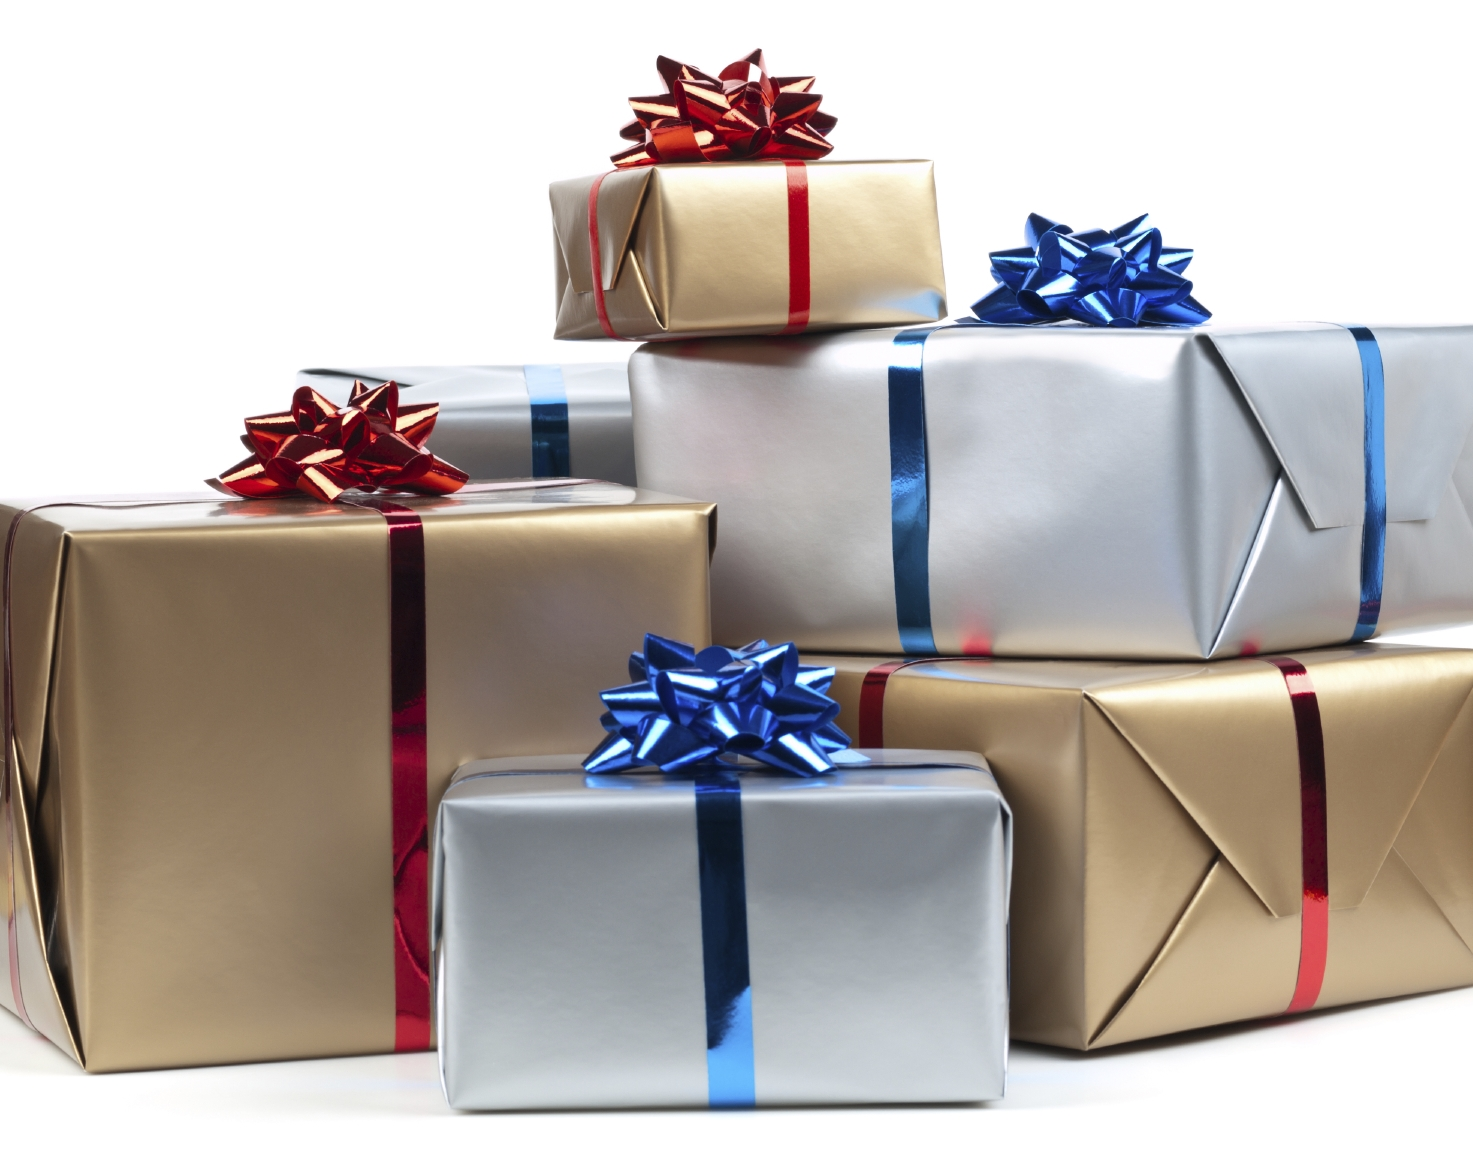 Presents stacked in a pile: brown with red ribbon and silver with blue ribbon